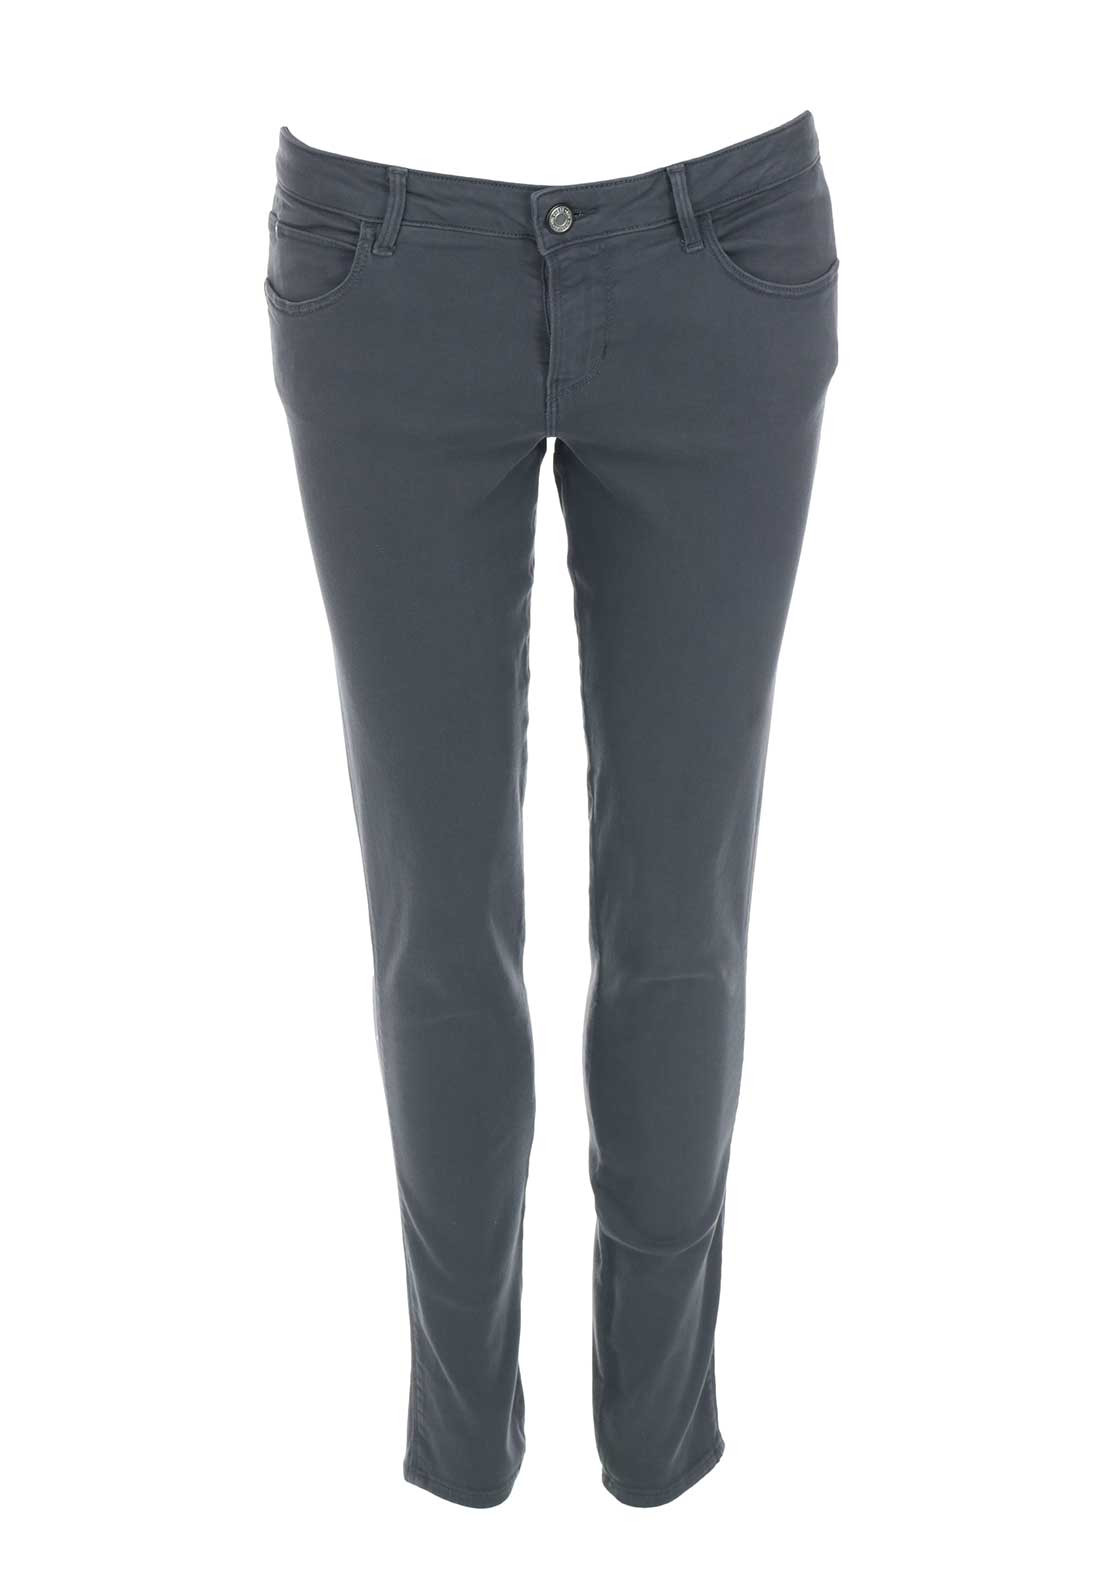 Guess Womens Push Up Skinny Jeans, Grey